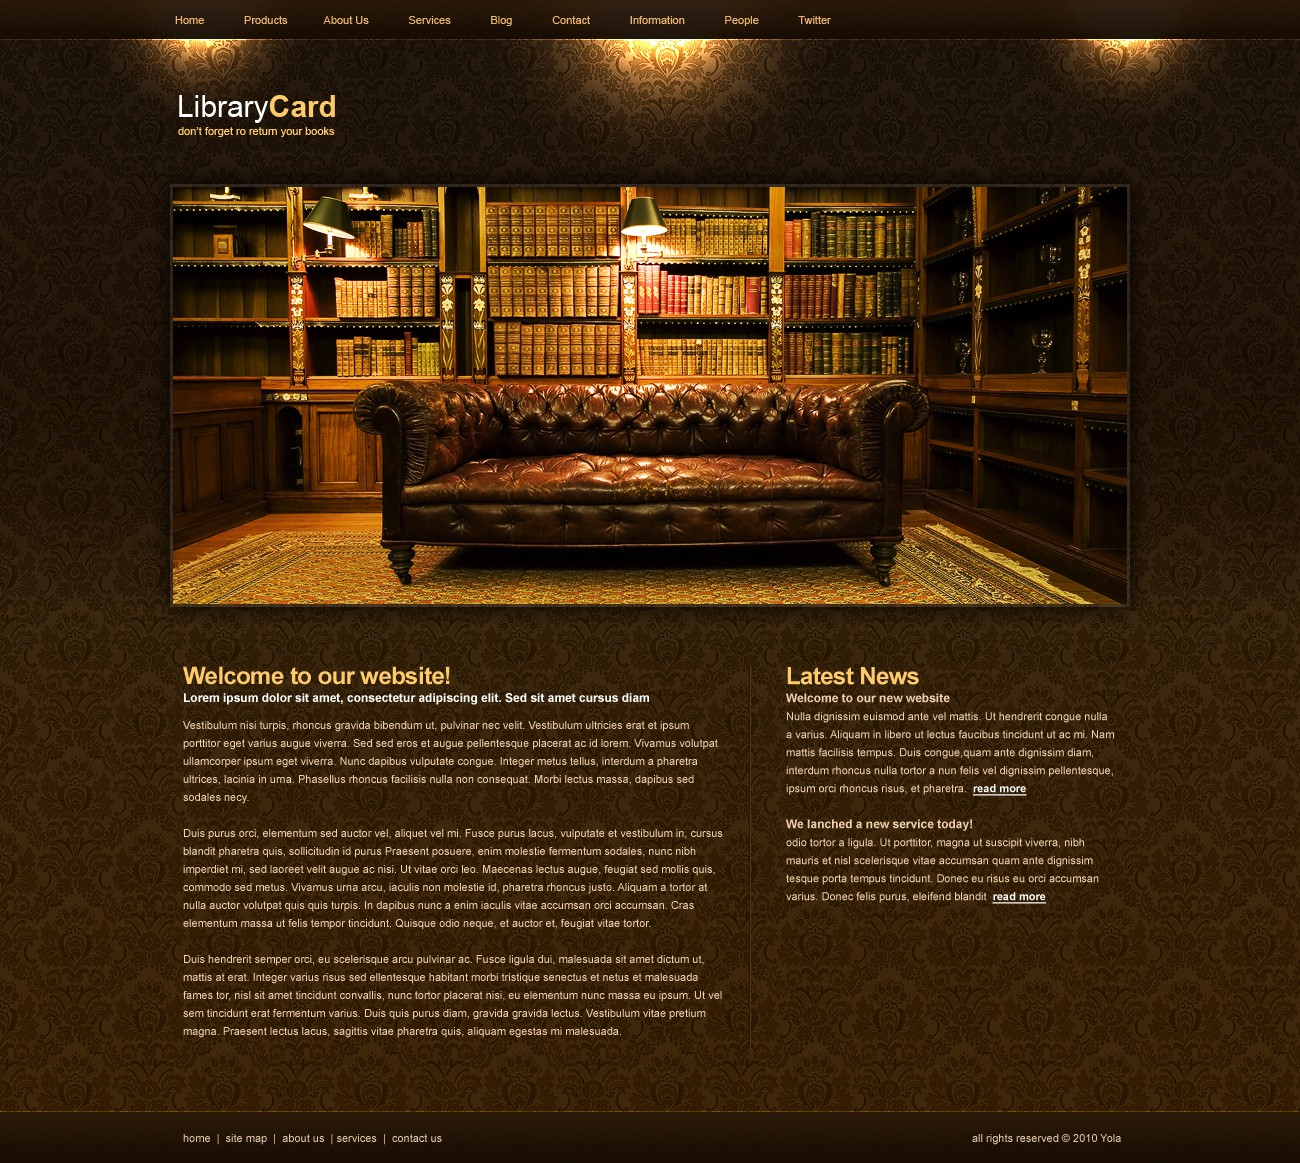 Web Page Design by sheeze